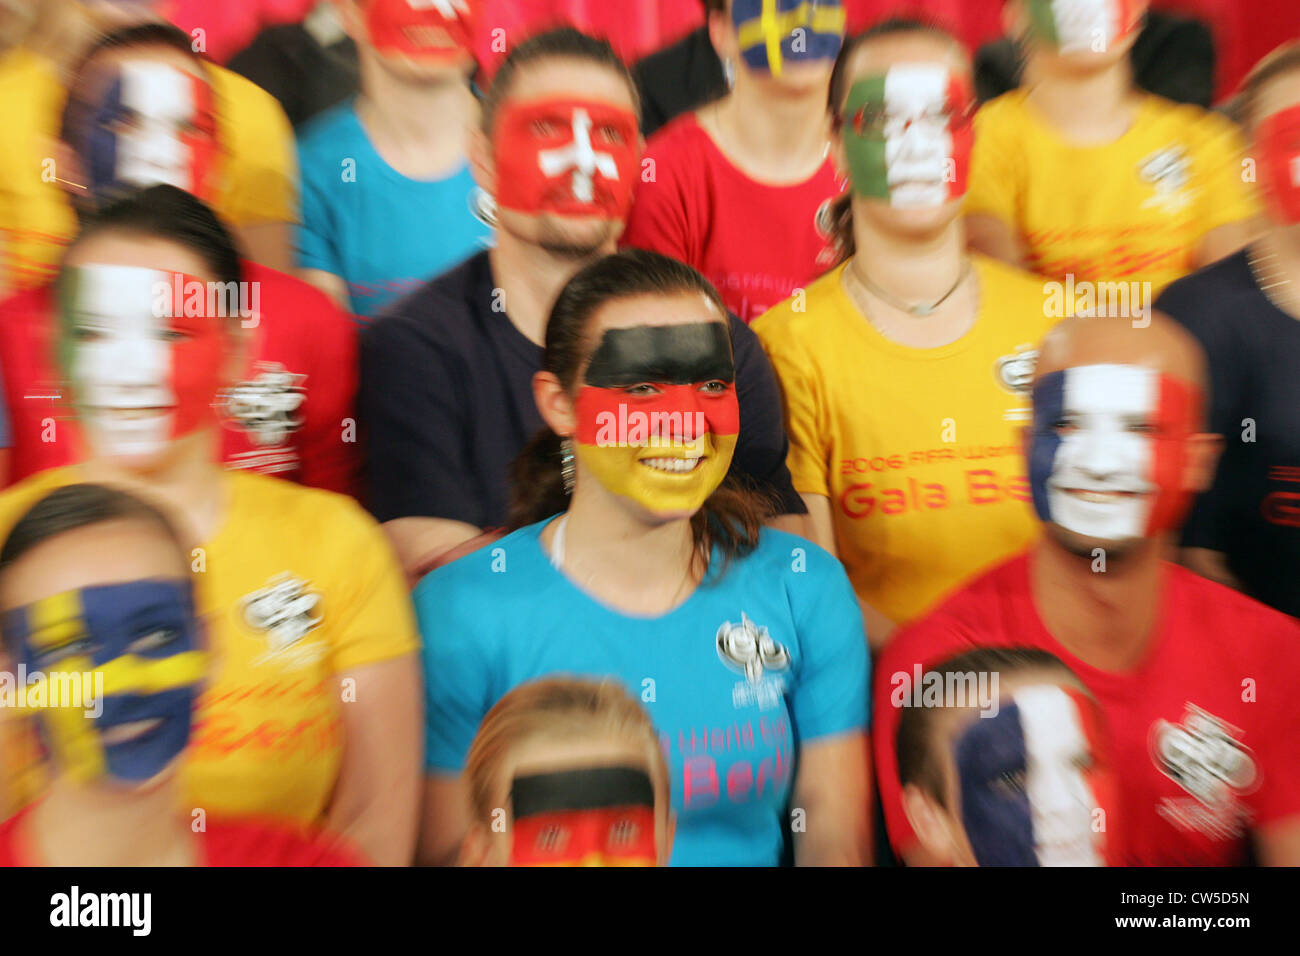 Volunteers of the 2006 World Cup with painted faces - Stock Image